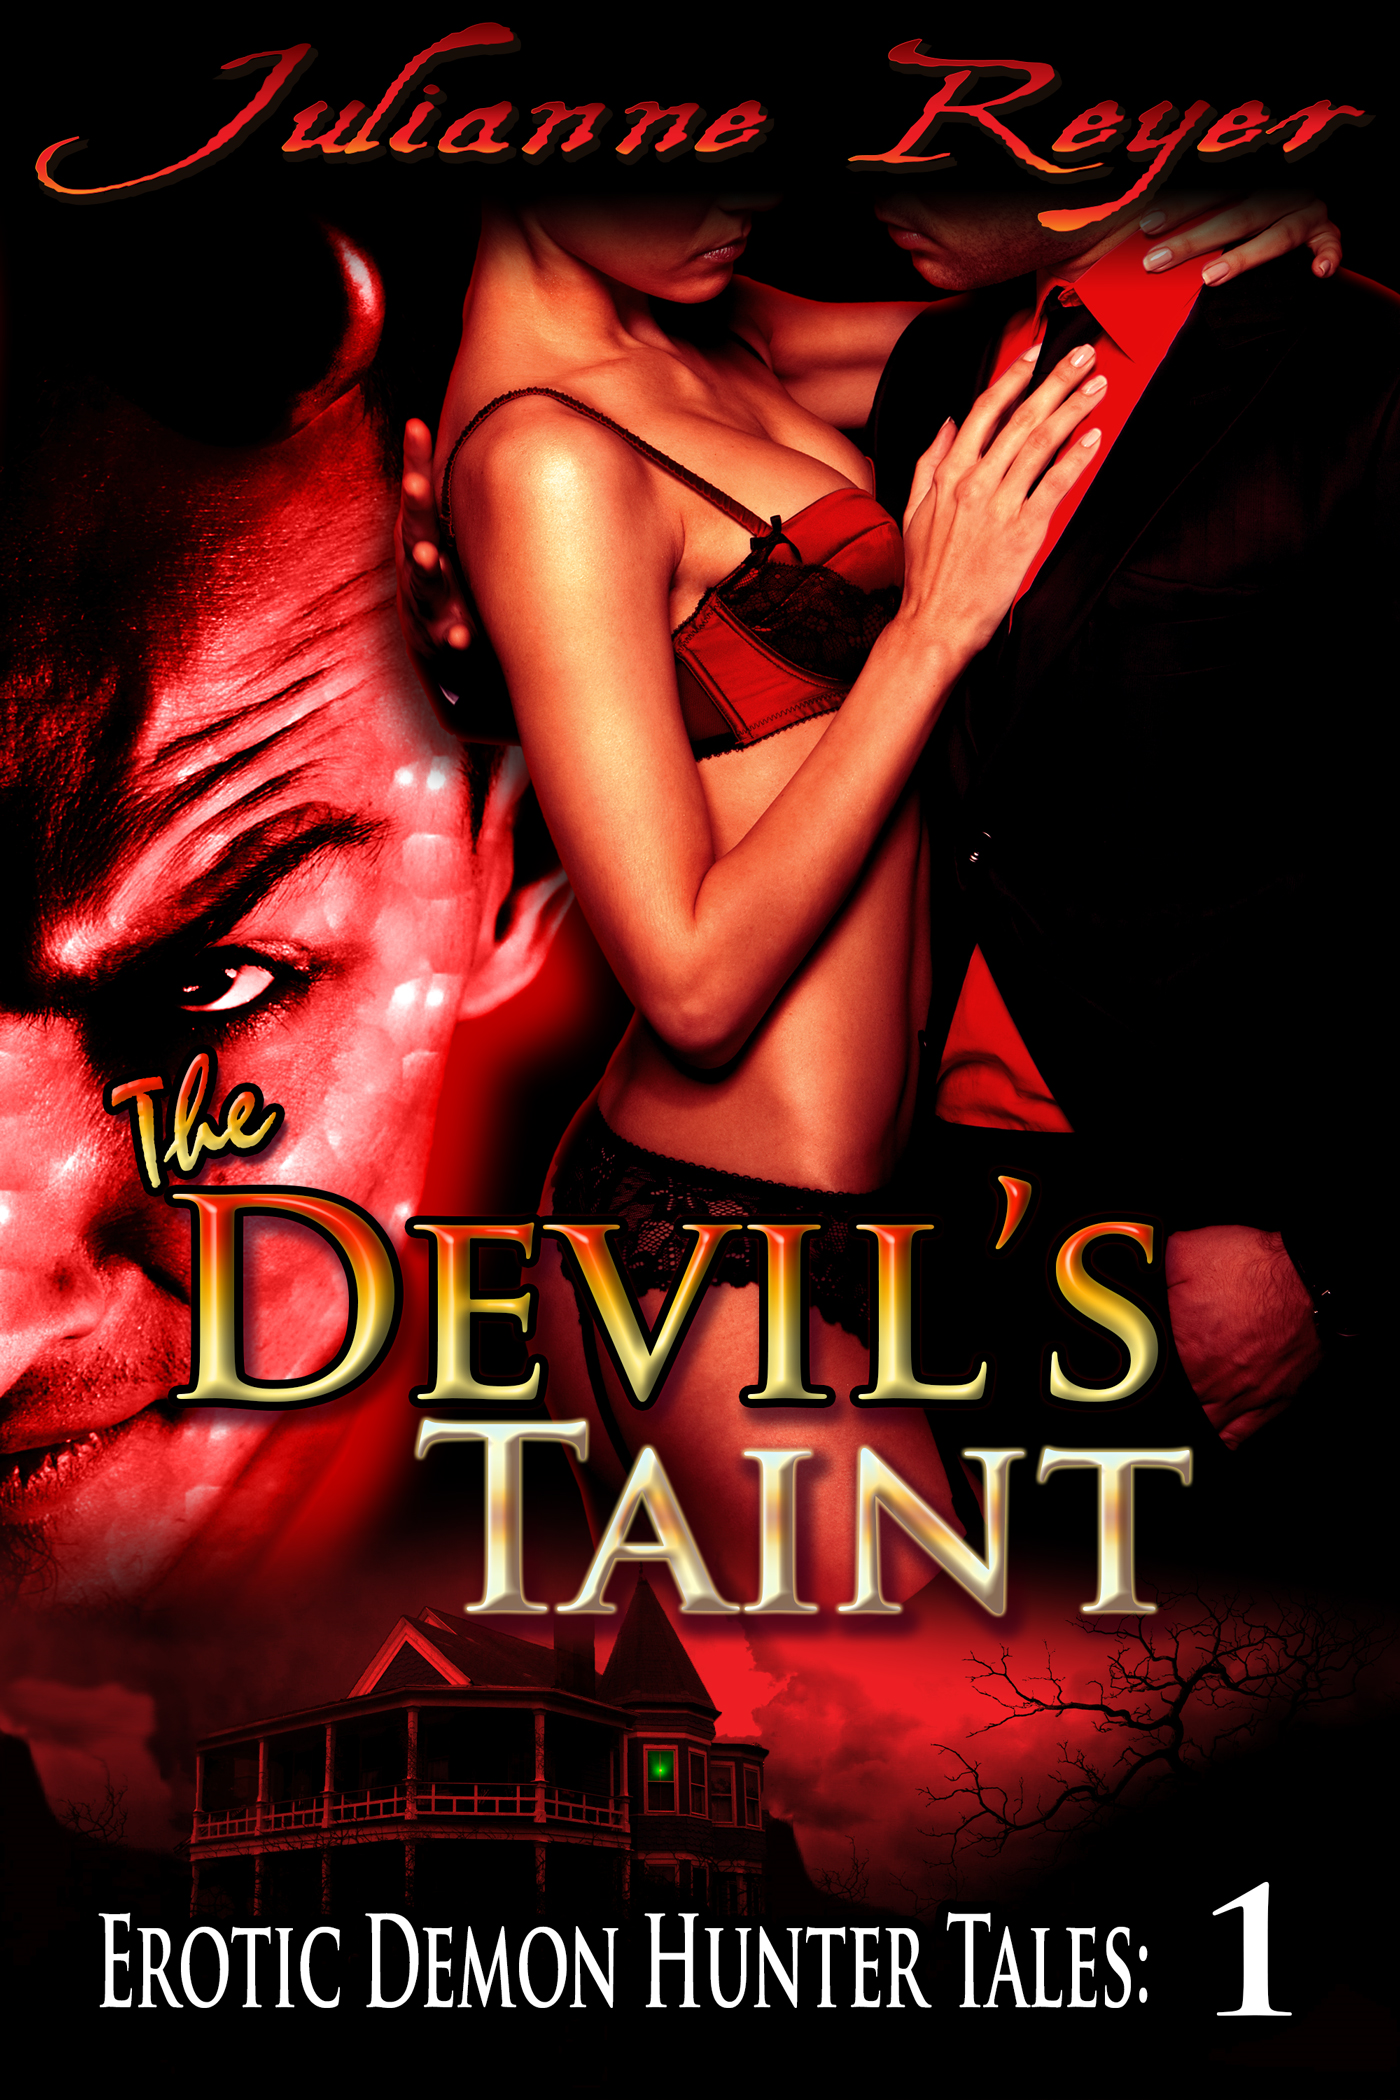 The Devil's Taint (Paranormal Menage Erotica) (sex, romance, supernatural, threesome, demon hunter, menage)